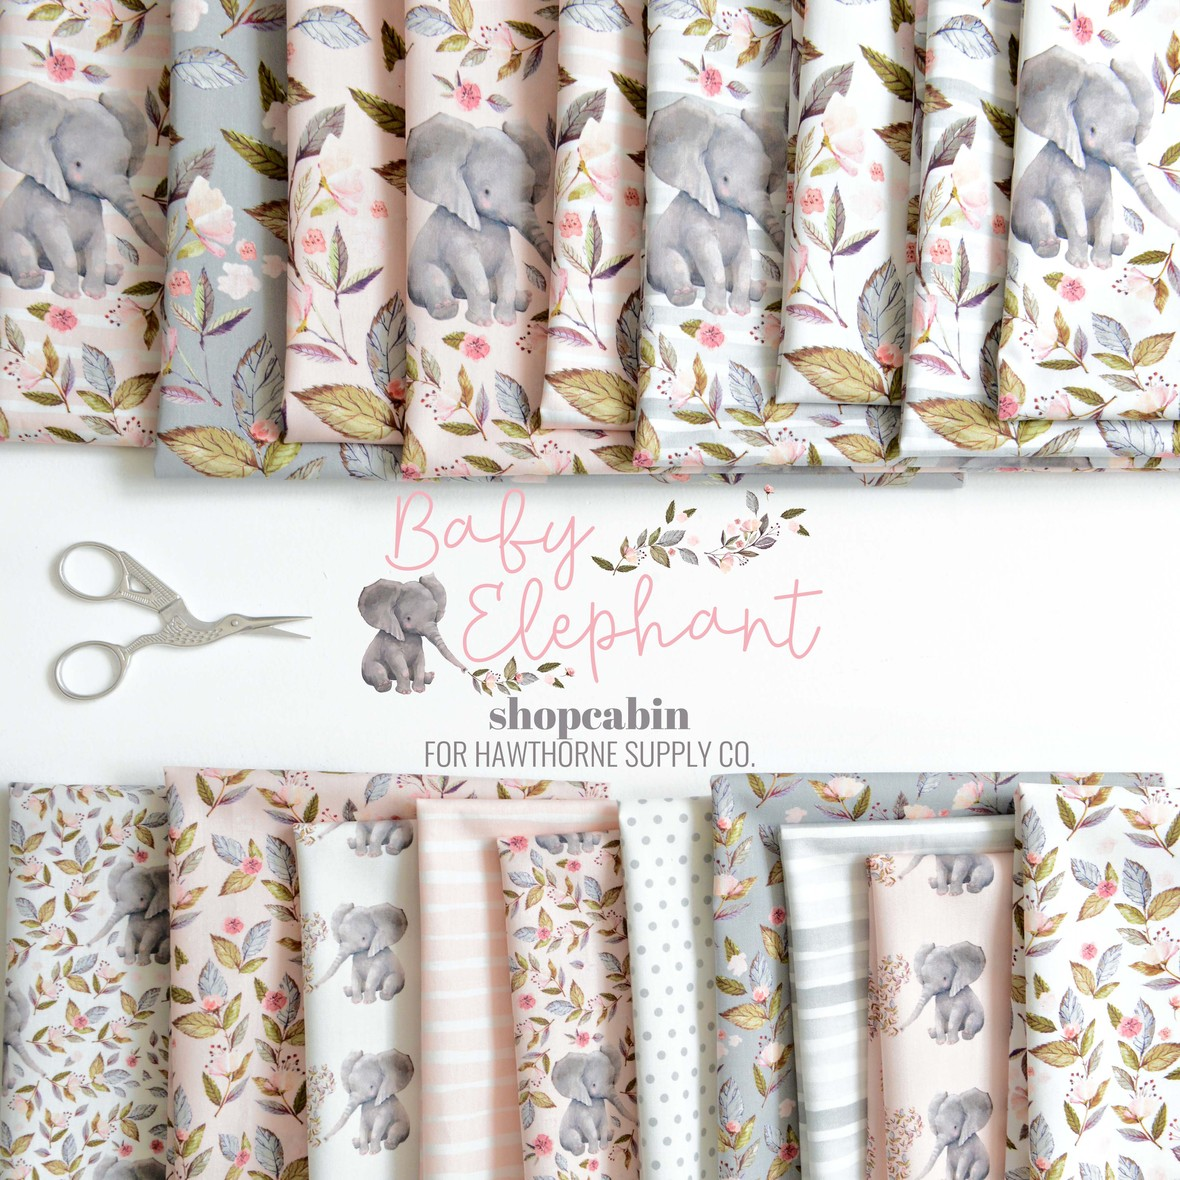 Baby Elephant Fabric Poster Shopcabin at Hawthorne Supply Co.